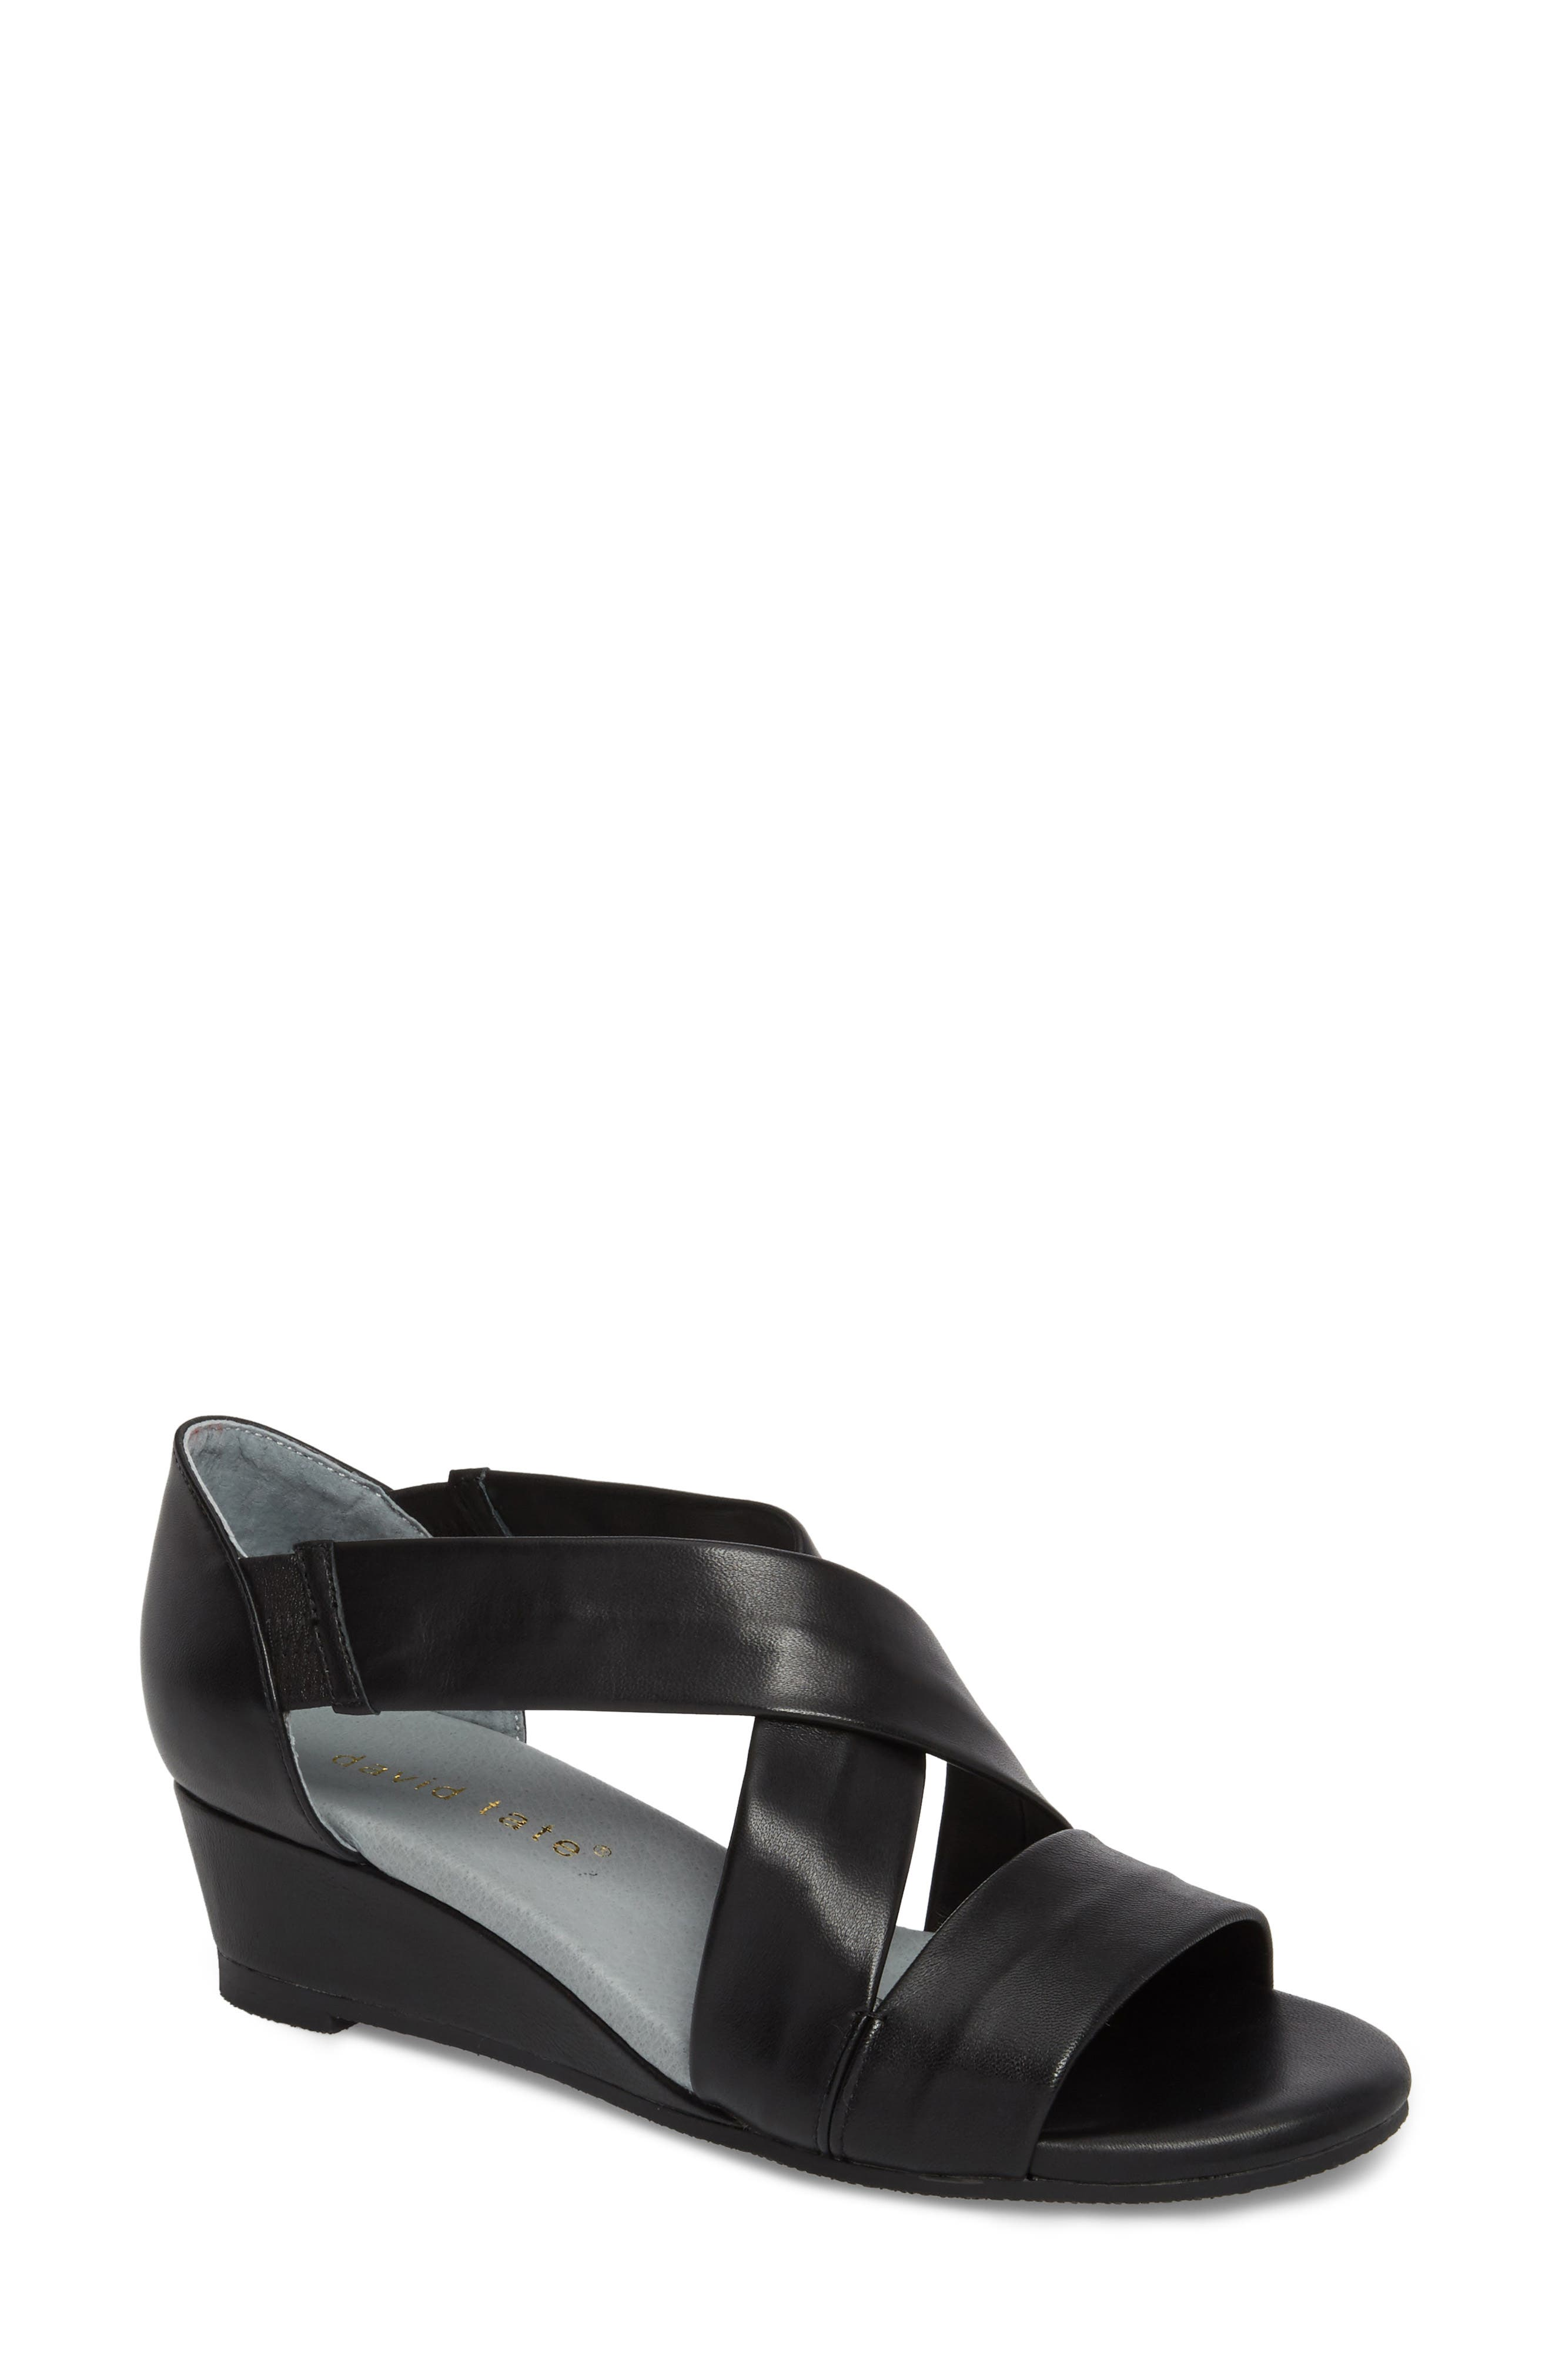 DAVID TATE Swell Cross Strap Wedge Sandal, Main, color, BLACK LEATHER